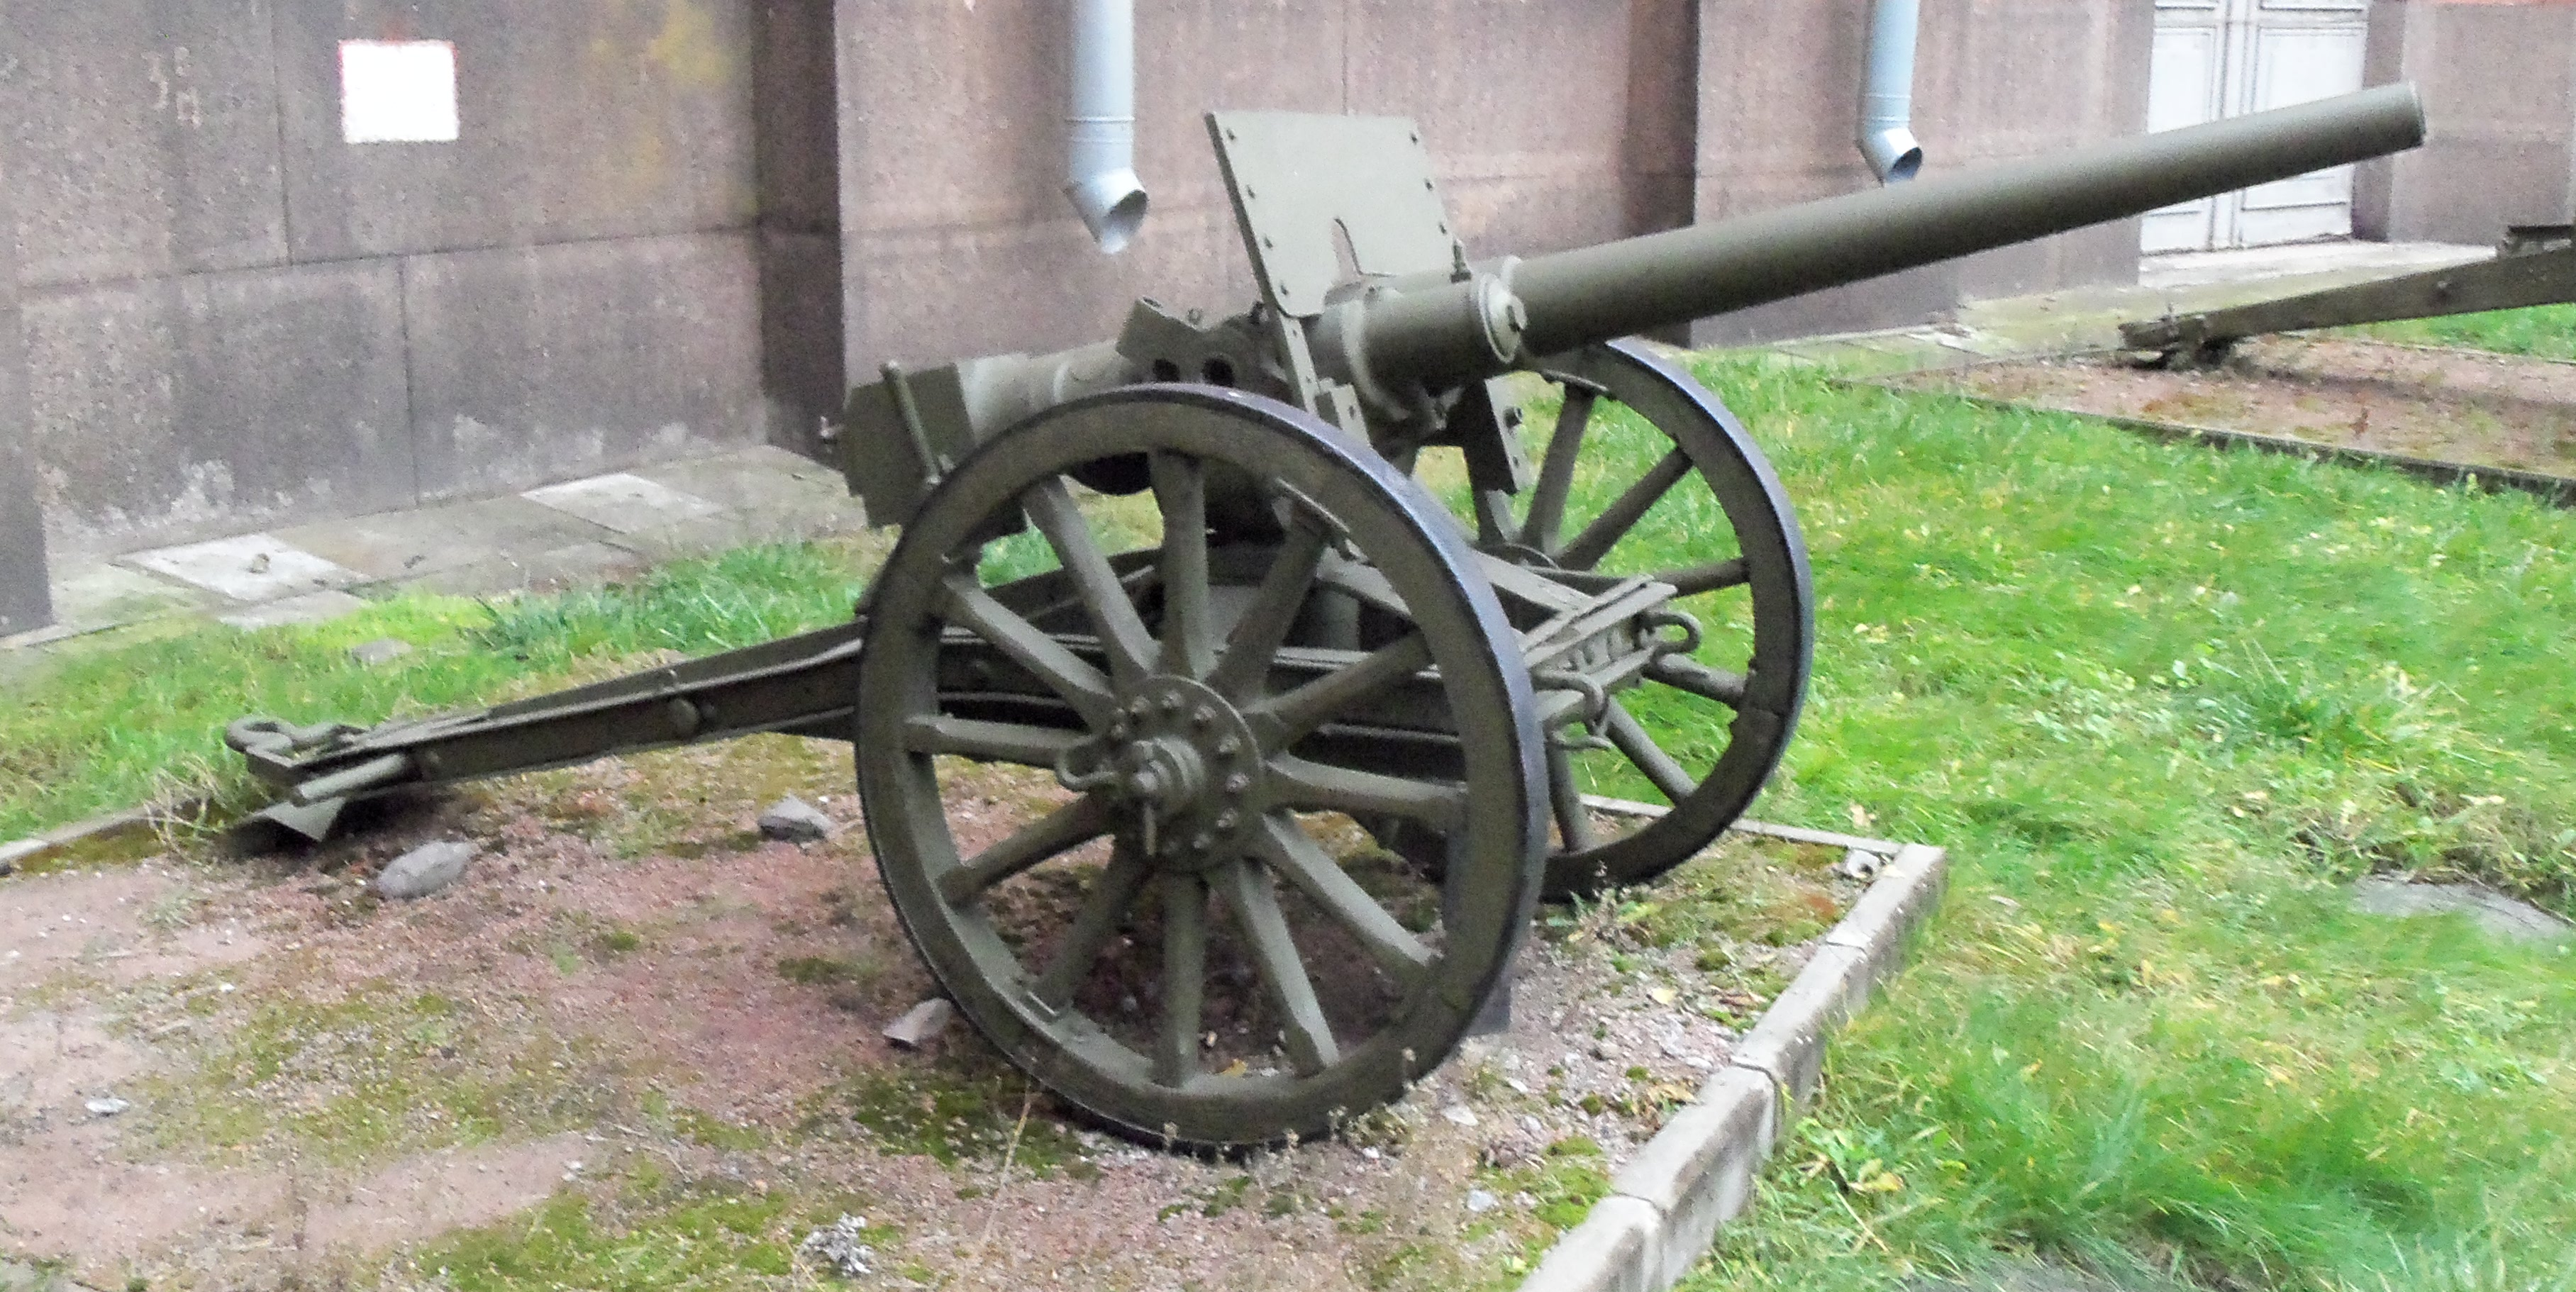 47mm_Russian_Hotchkiss_gun_on_field_carr